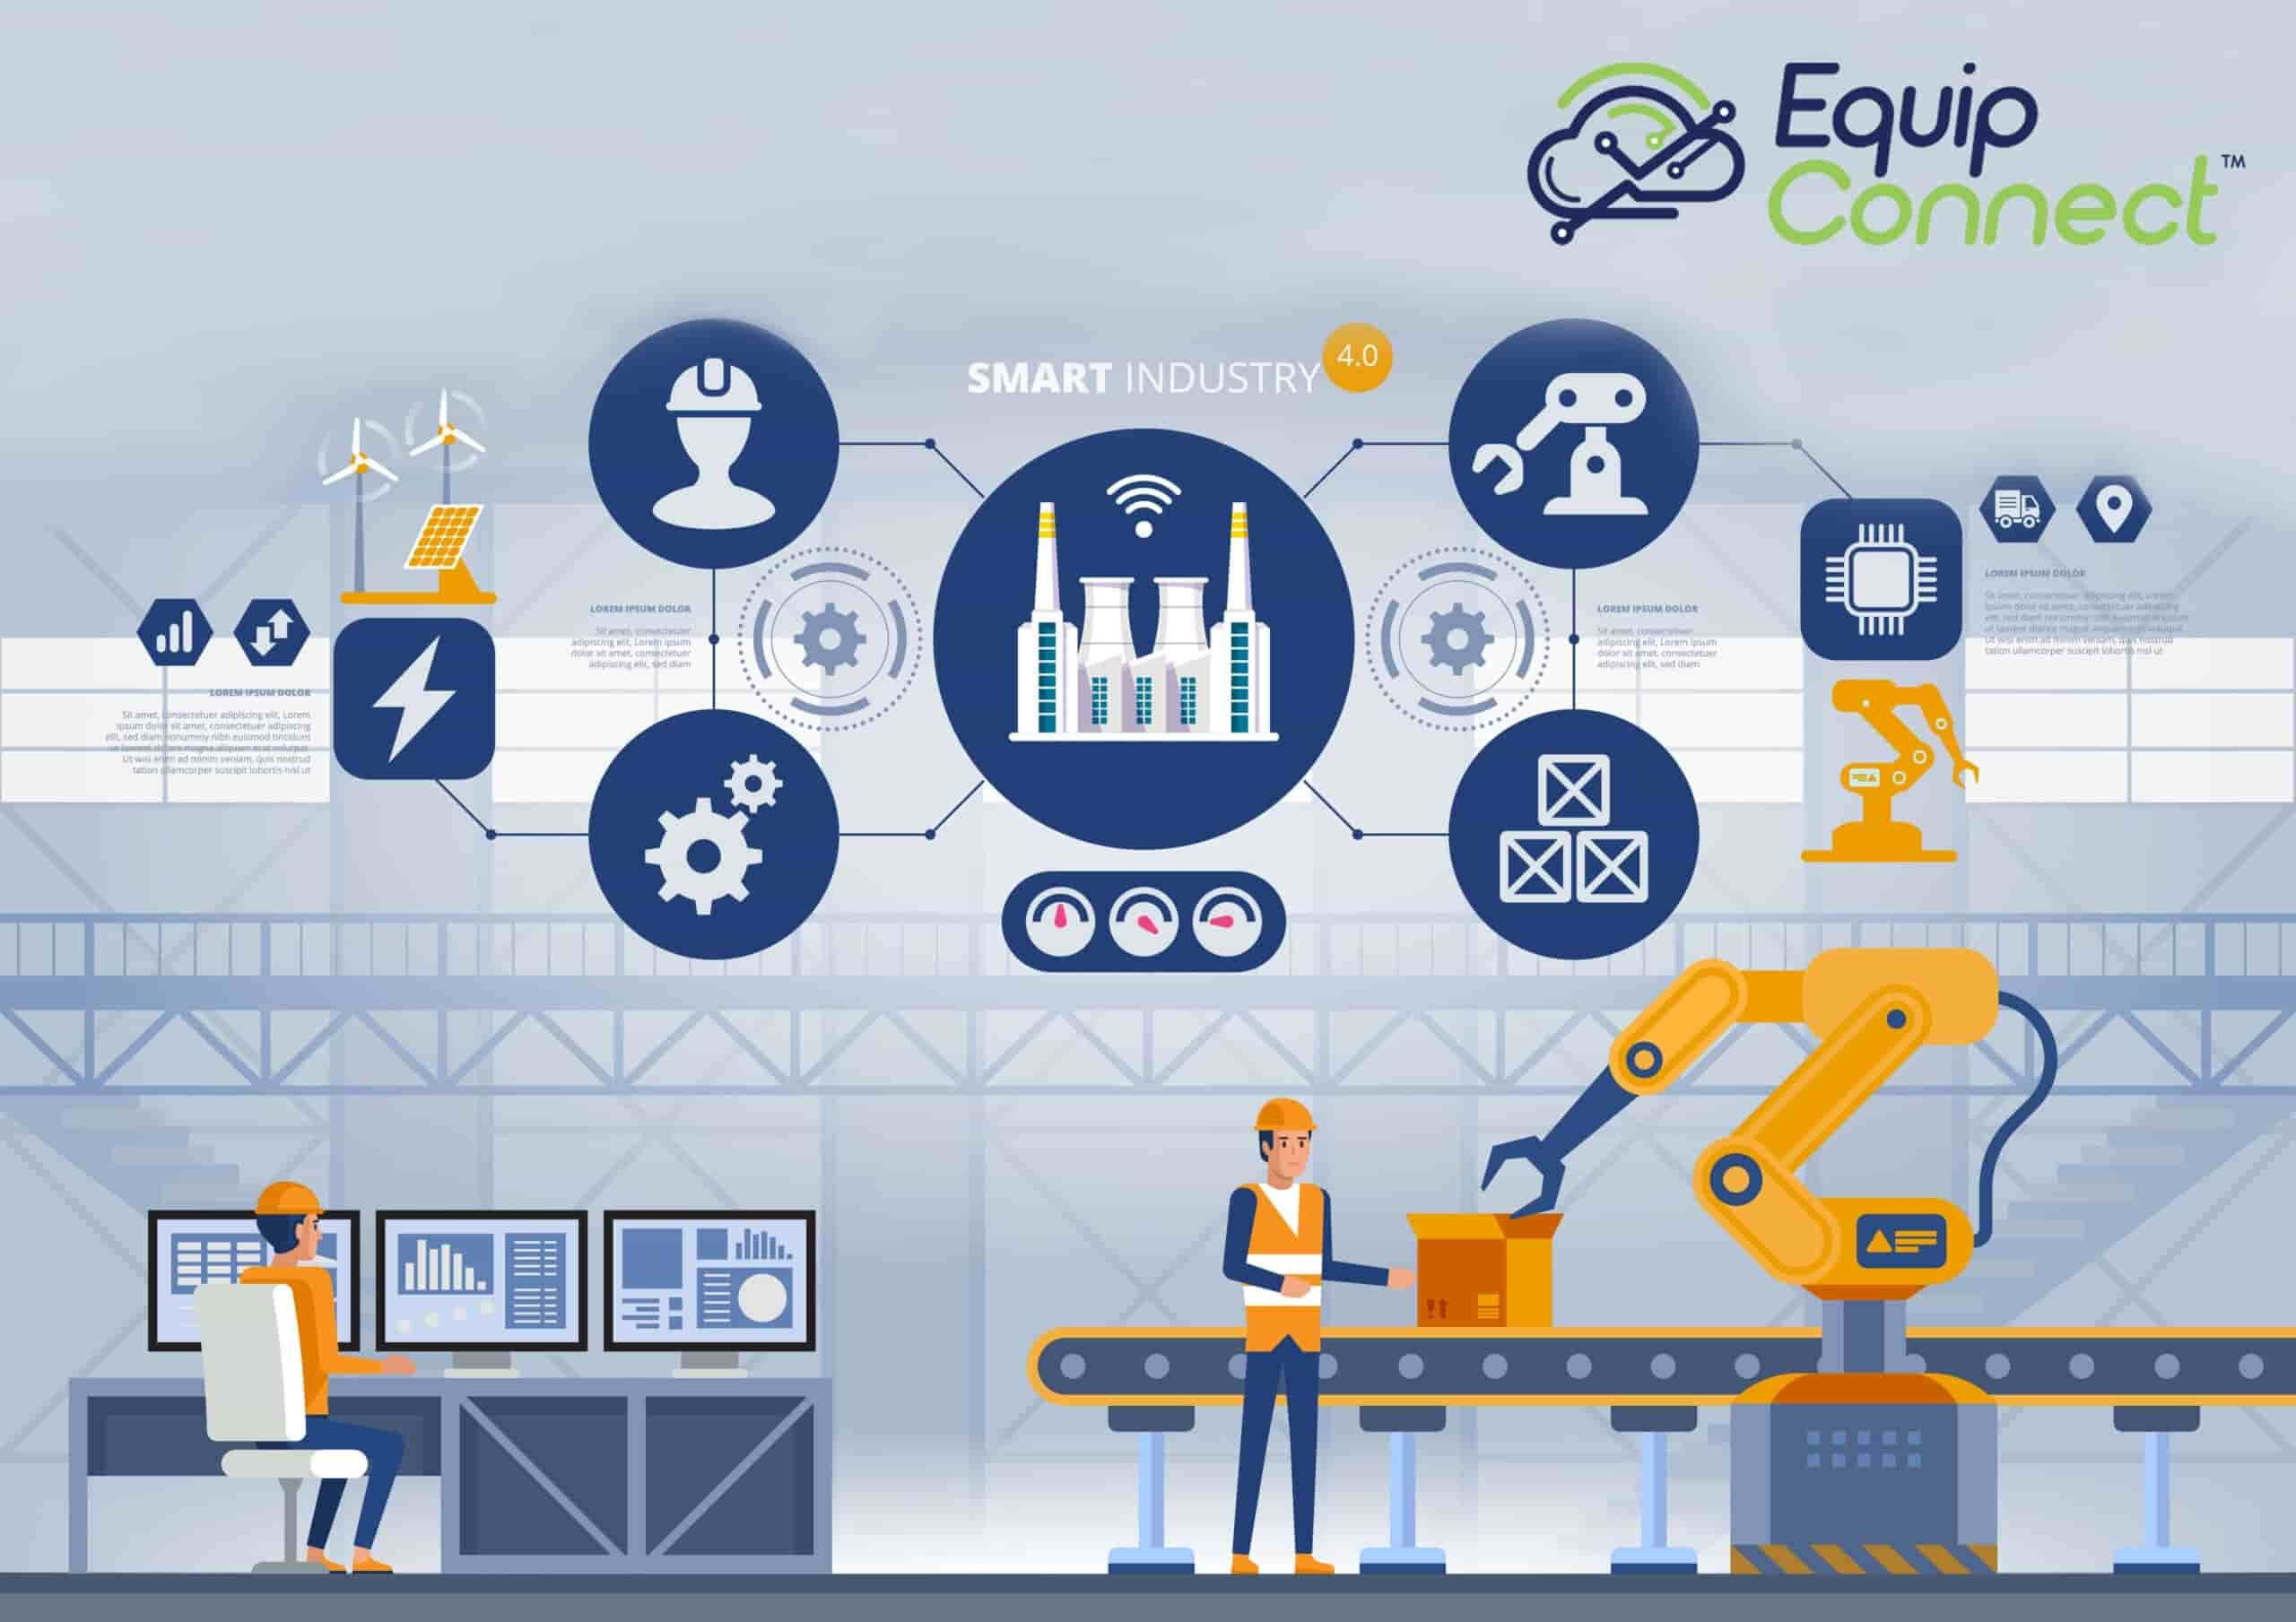 IoT Monitoring Software for Smart Industry